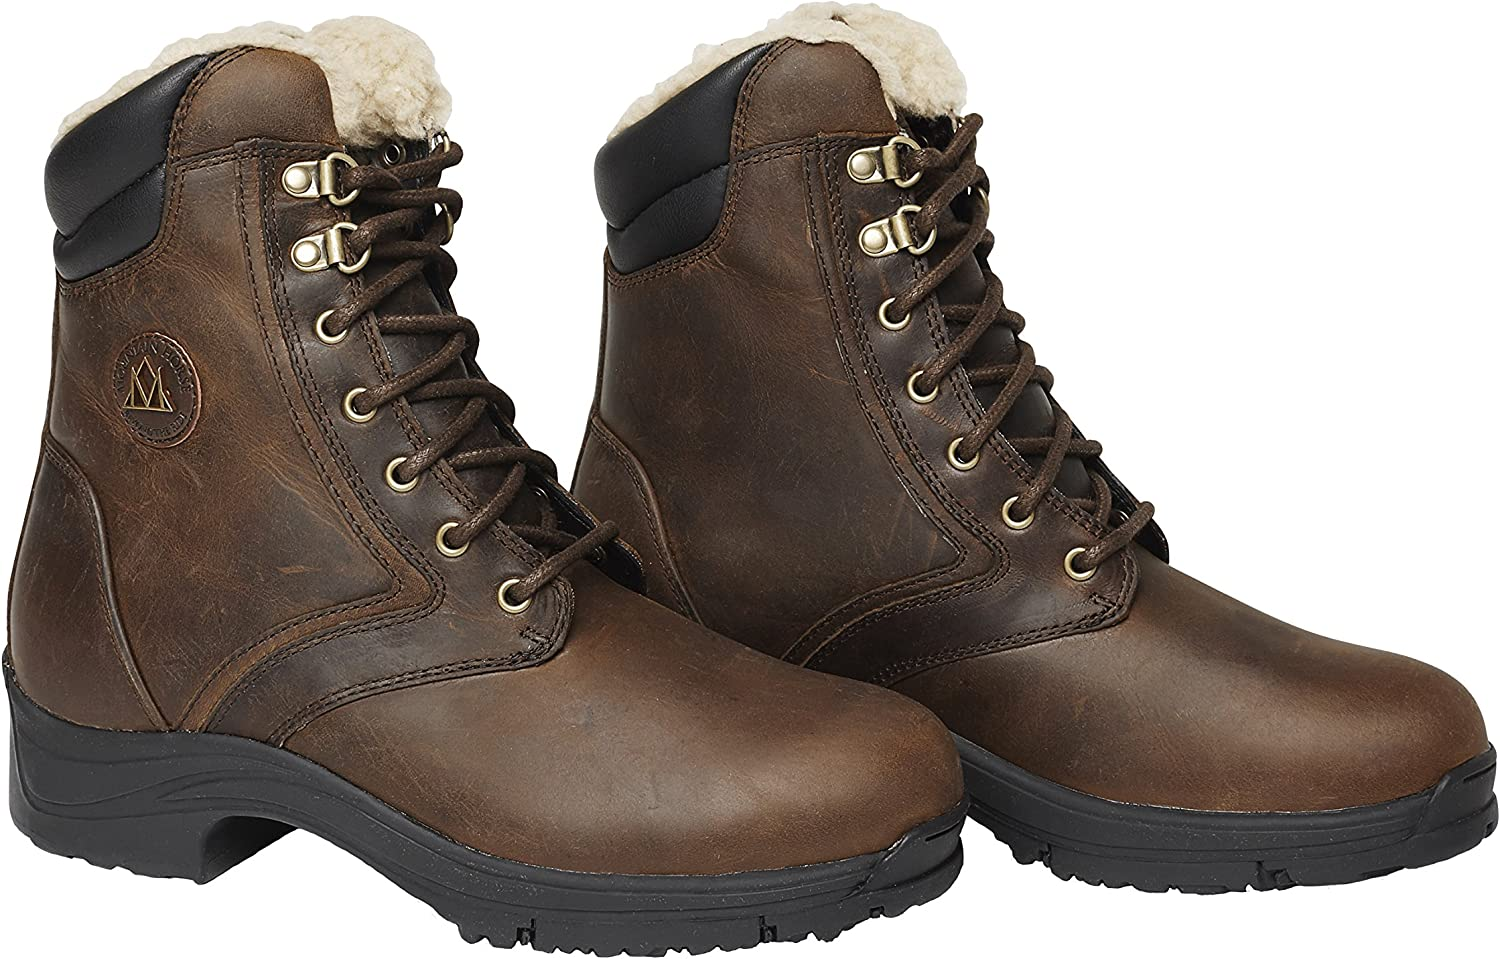 ERS Paddock Boots Laced-Ladies Synthetic Leather